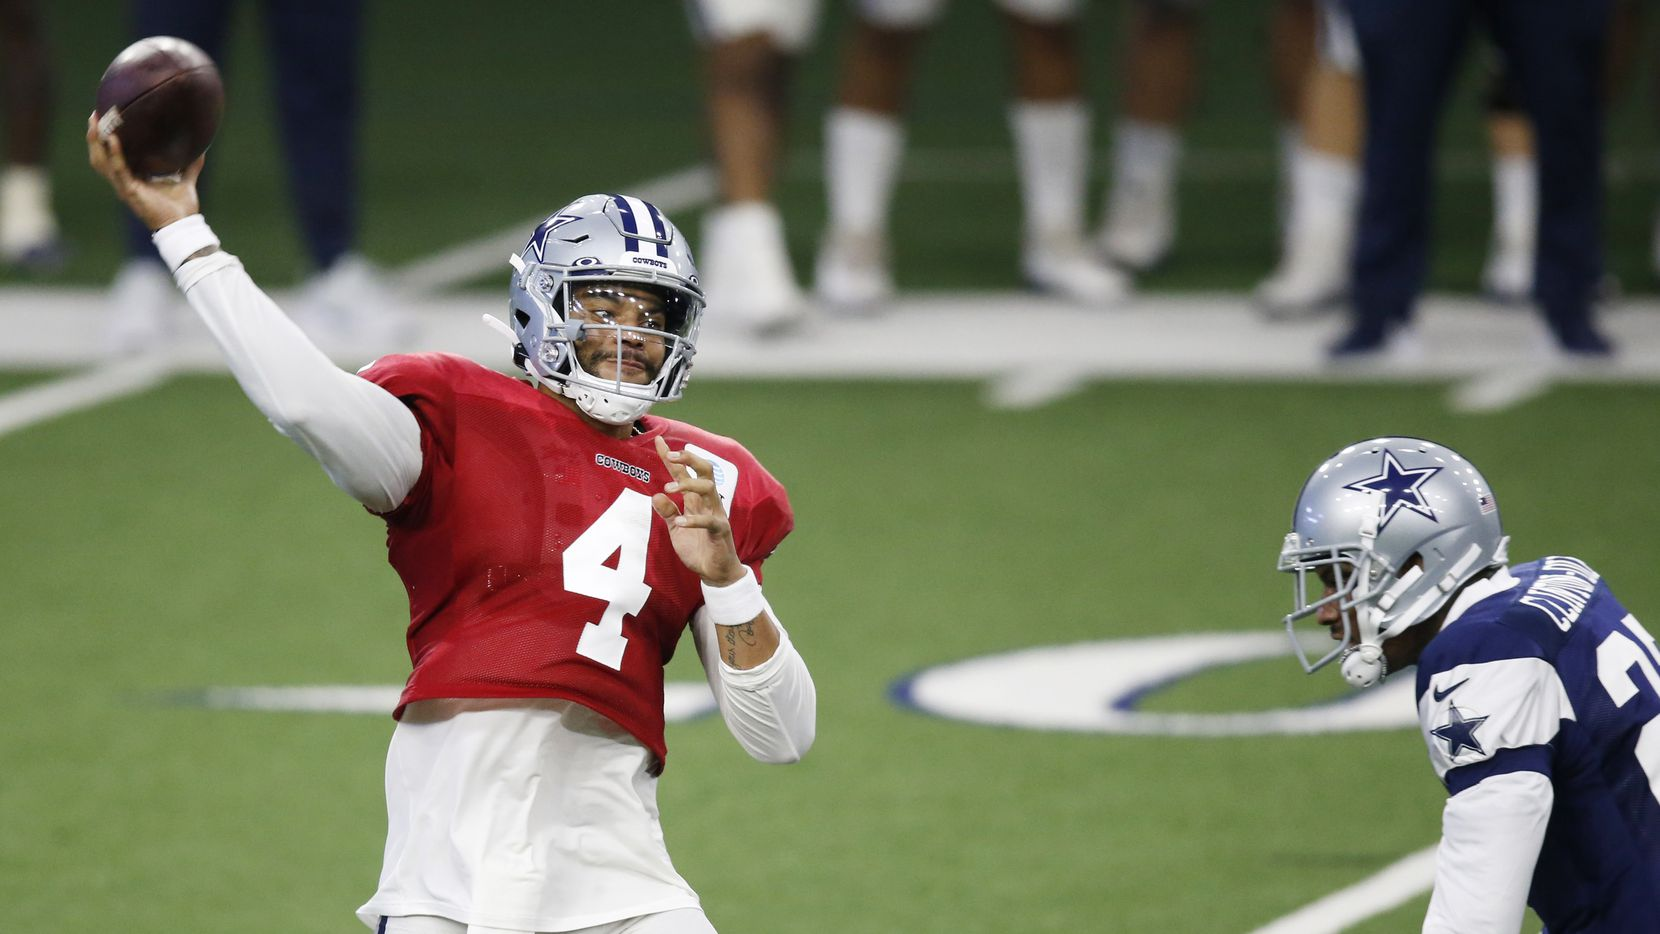 Dallas Cowboys quarterback Dak Prescott (4) attempts a pass as Dallas Cowboys safety Ha Ha Clinton-Dix (27) rushes him during training camp inside the Ford Center at the Dallas Cowboys headquarters at The Star in Frisco, Texas on Tuesday, August 18, 2020.